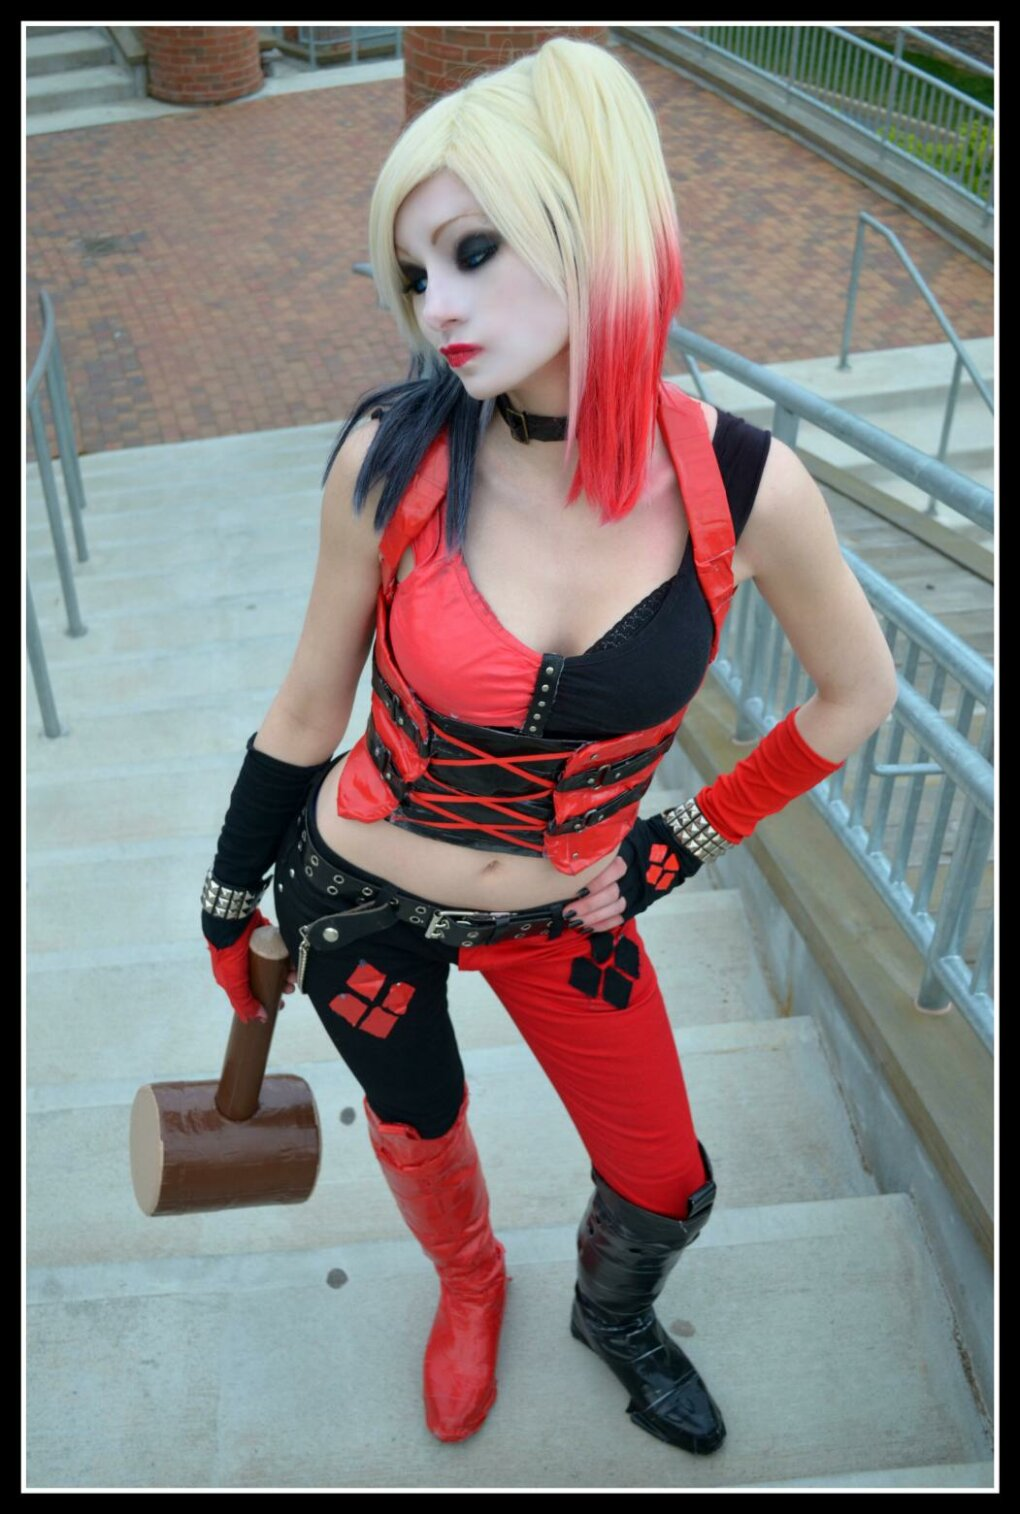 sexy harley quinn cosplay done right